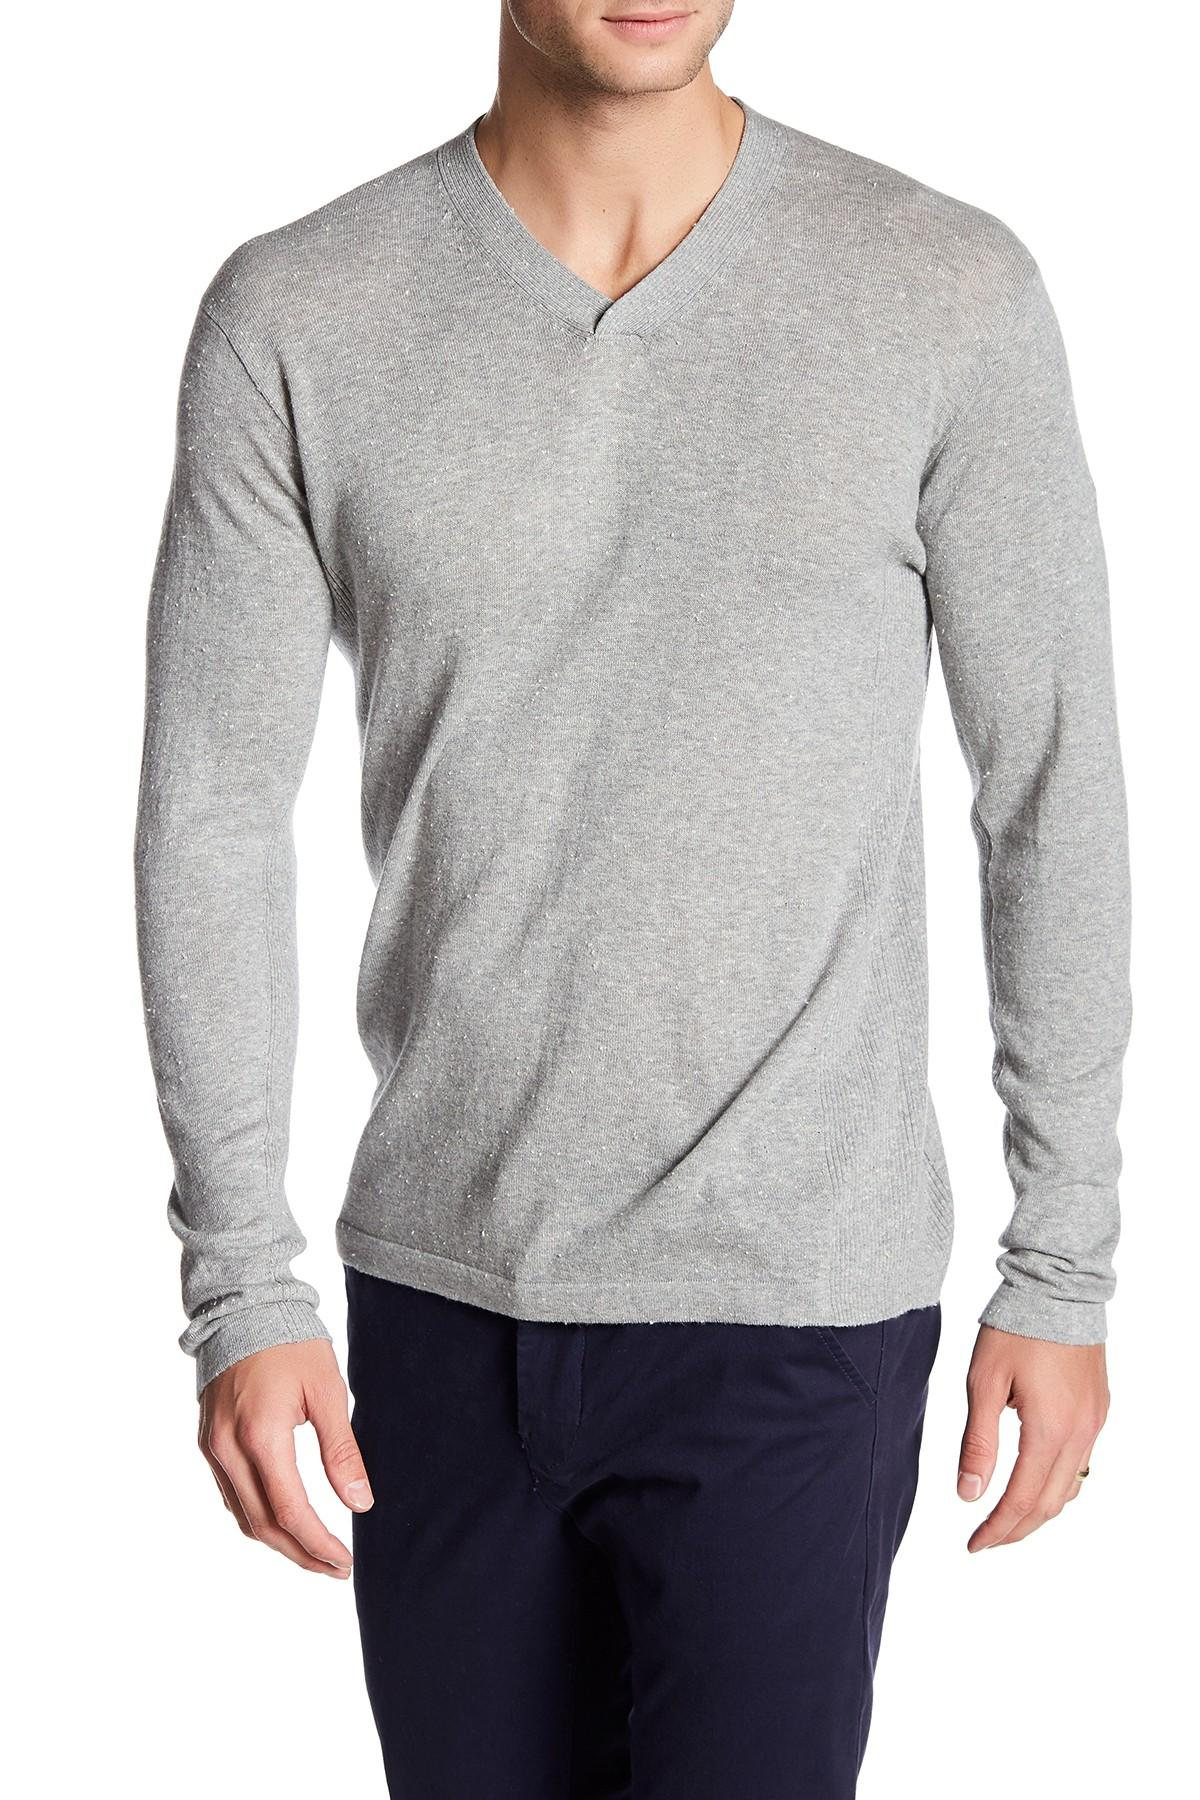 Autumn cashmere Ribbed V-neck Sweater in Gray for Men